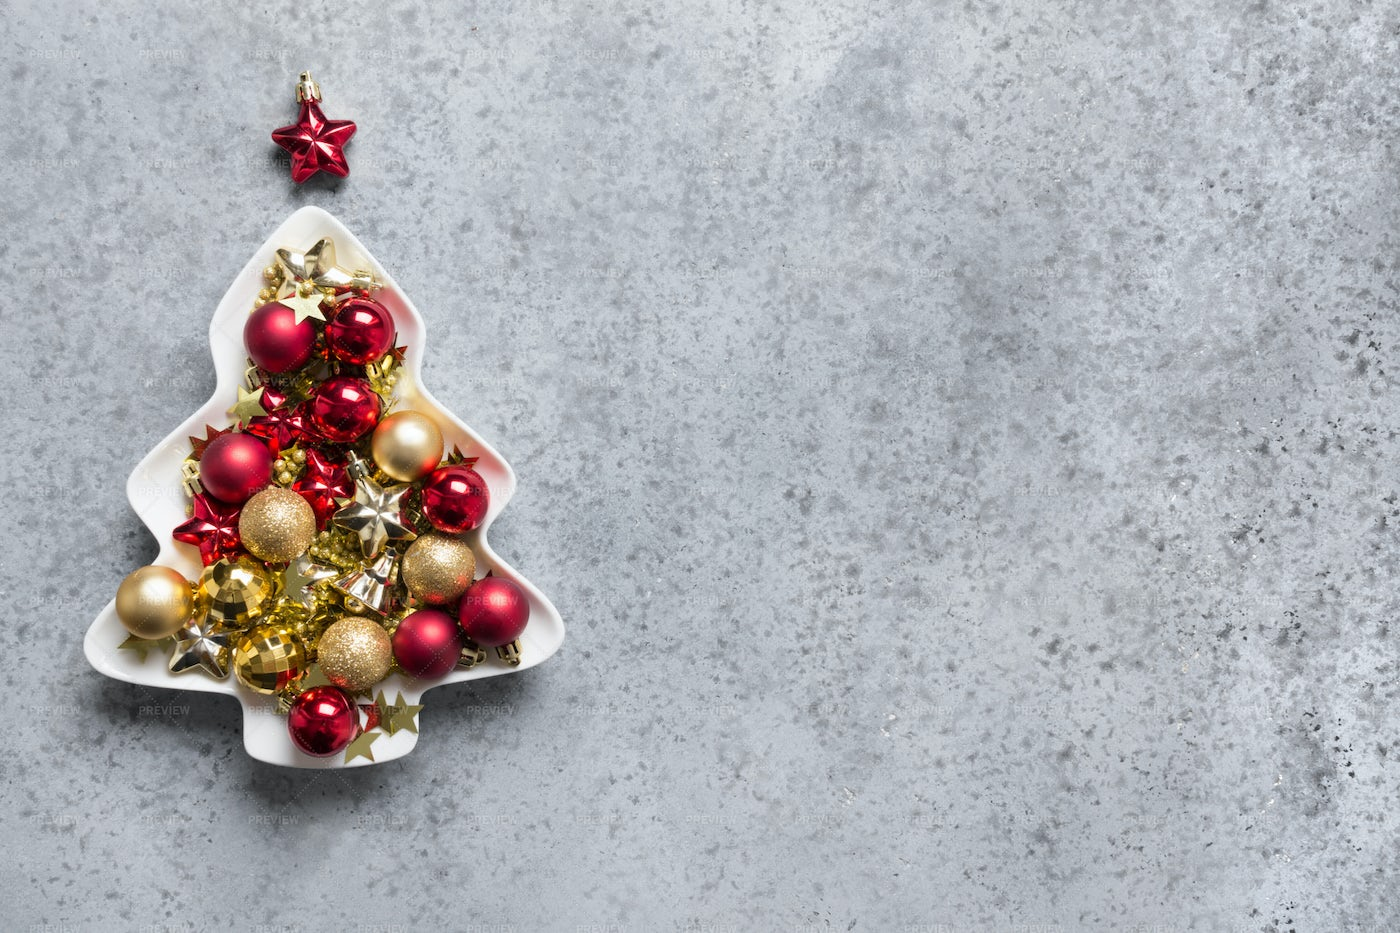 Christmas Tree Made Of Baubles: Stock Photos